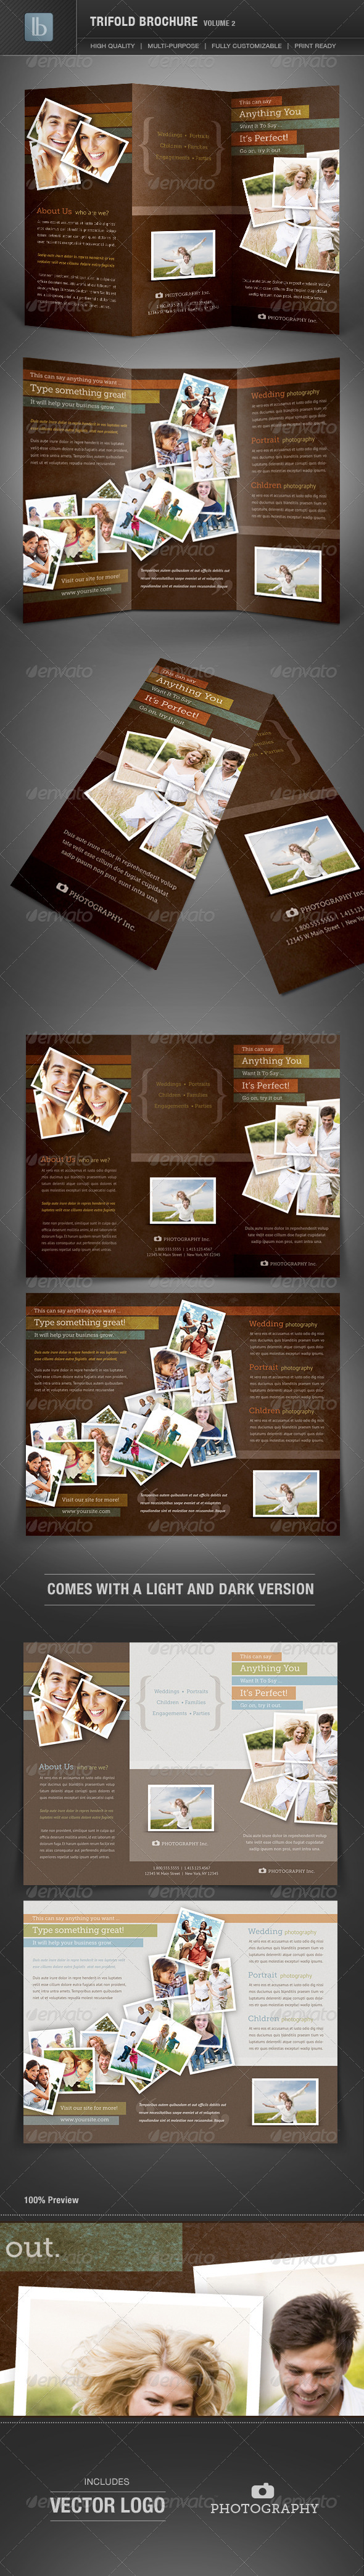 Trifold Brochure | Volume 2 - Corporate Brochures